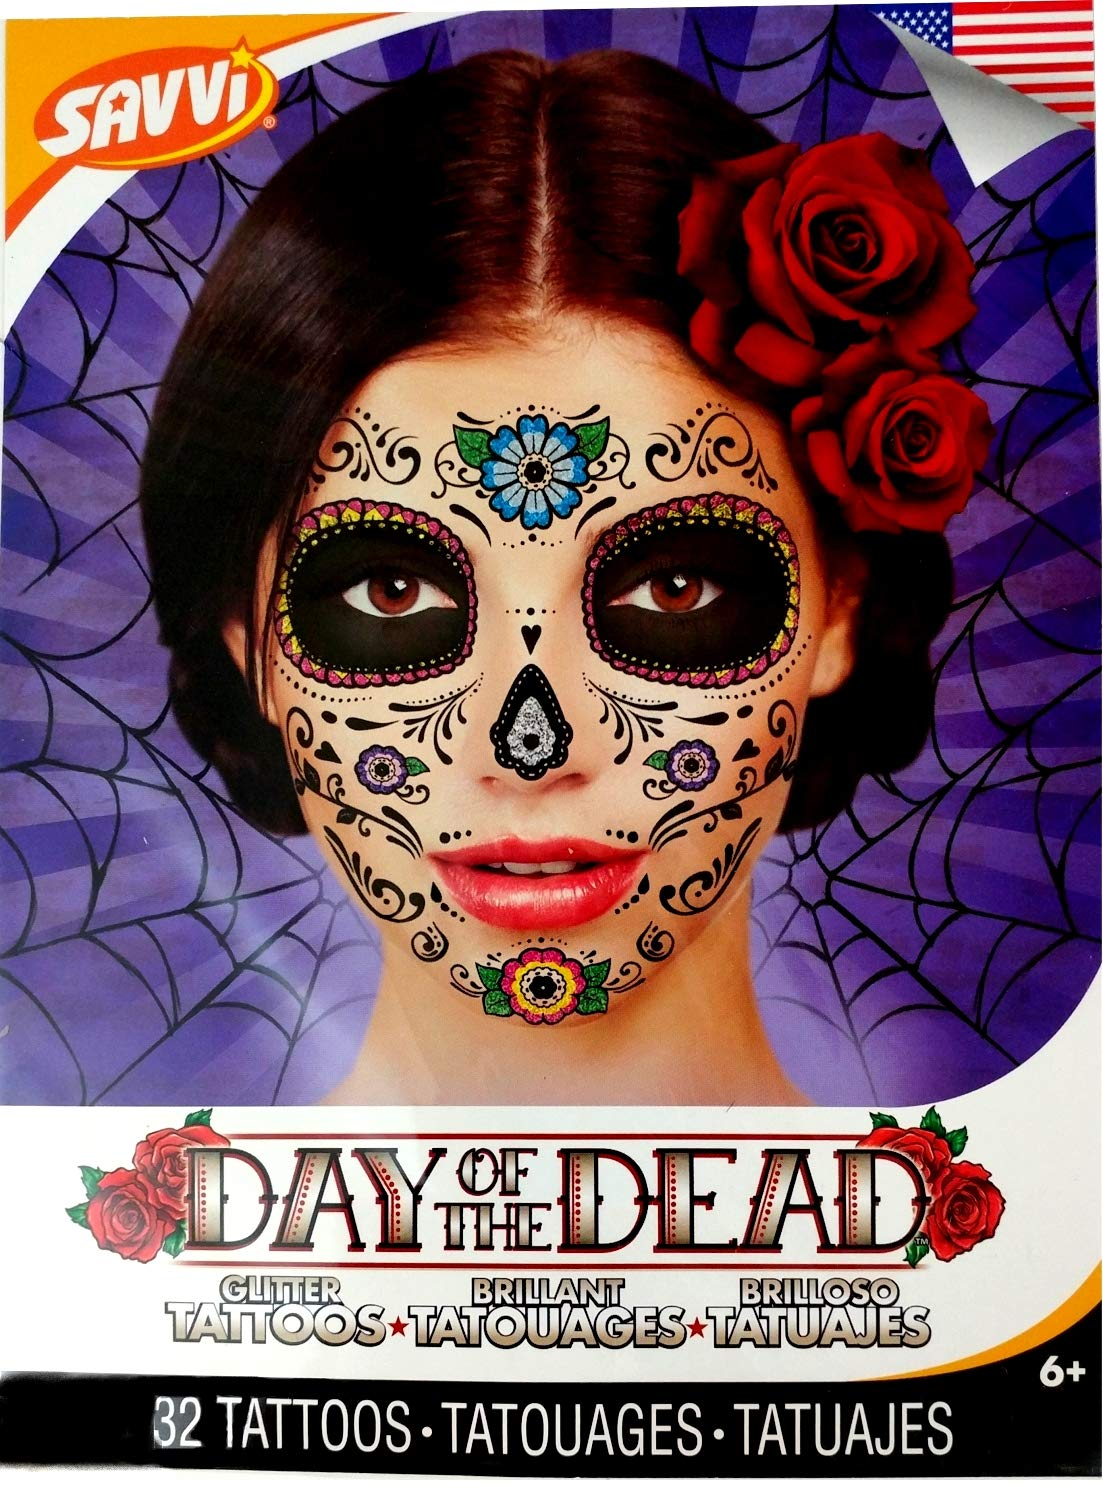 Amazon.com: Day of the Dead Temporary Tattoos Costume Kit (Set of 2 Sugar Skull Tattoos, Flower Design): Day of the Dead Face Tattoos; Sugar Skull Temporary ...